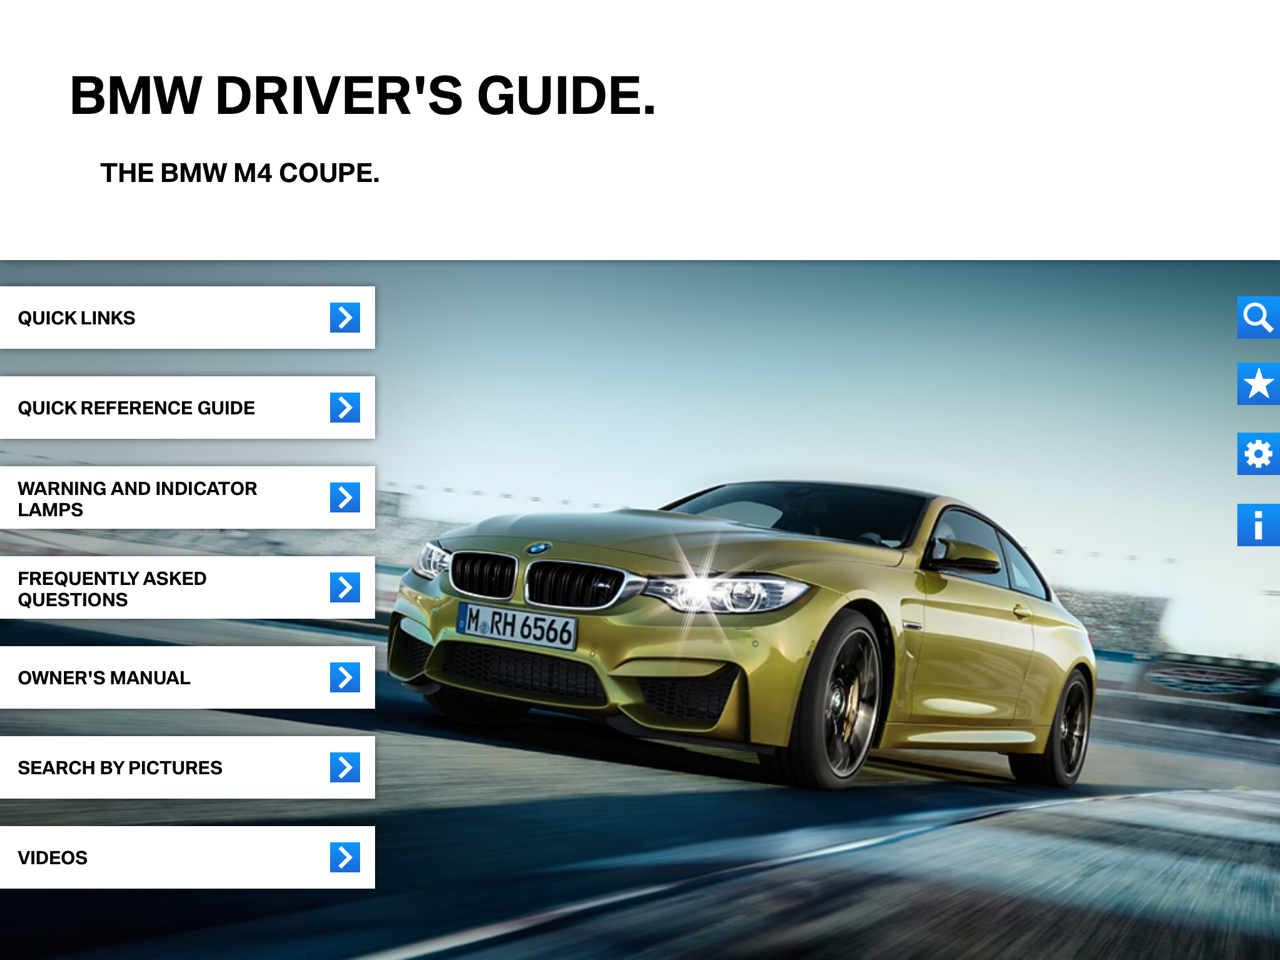 M3 M4 User Manuals Now Available On Itunes App Store For Iphone And Ipad